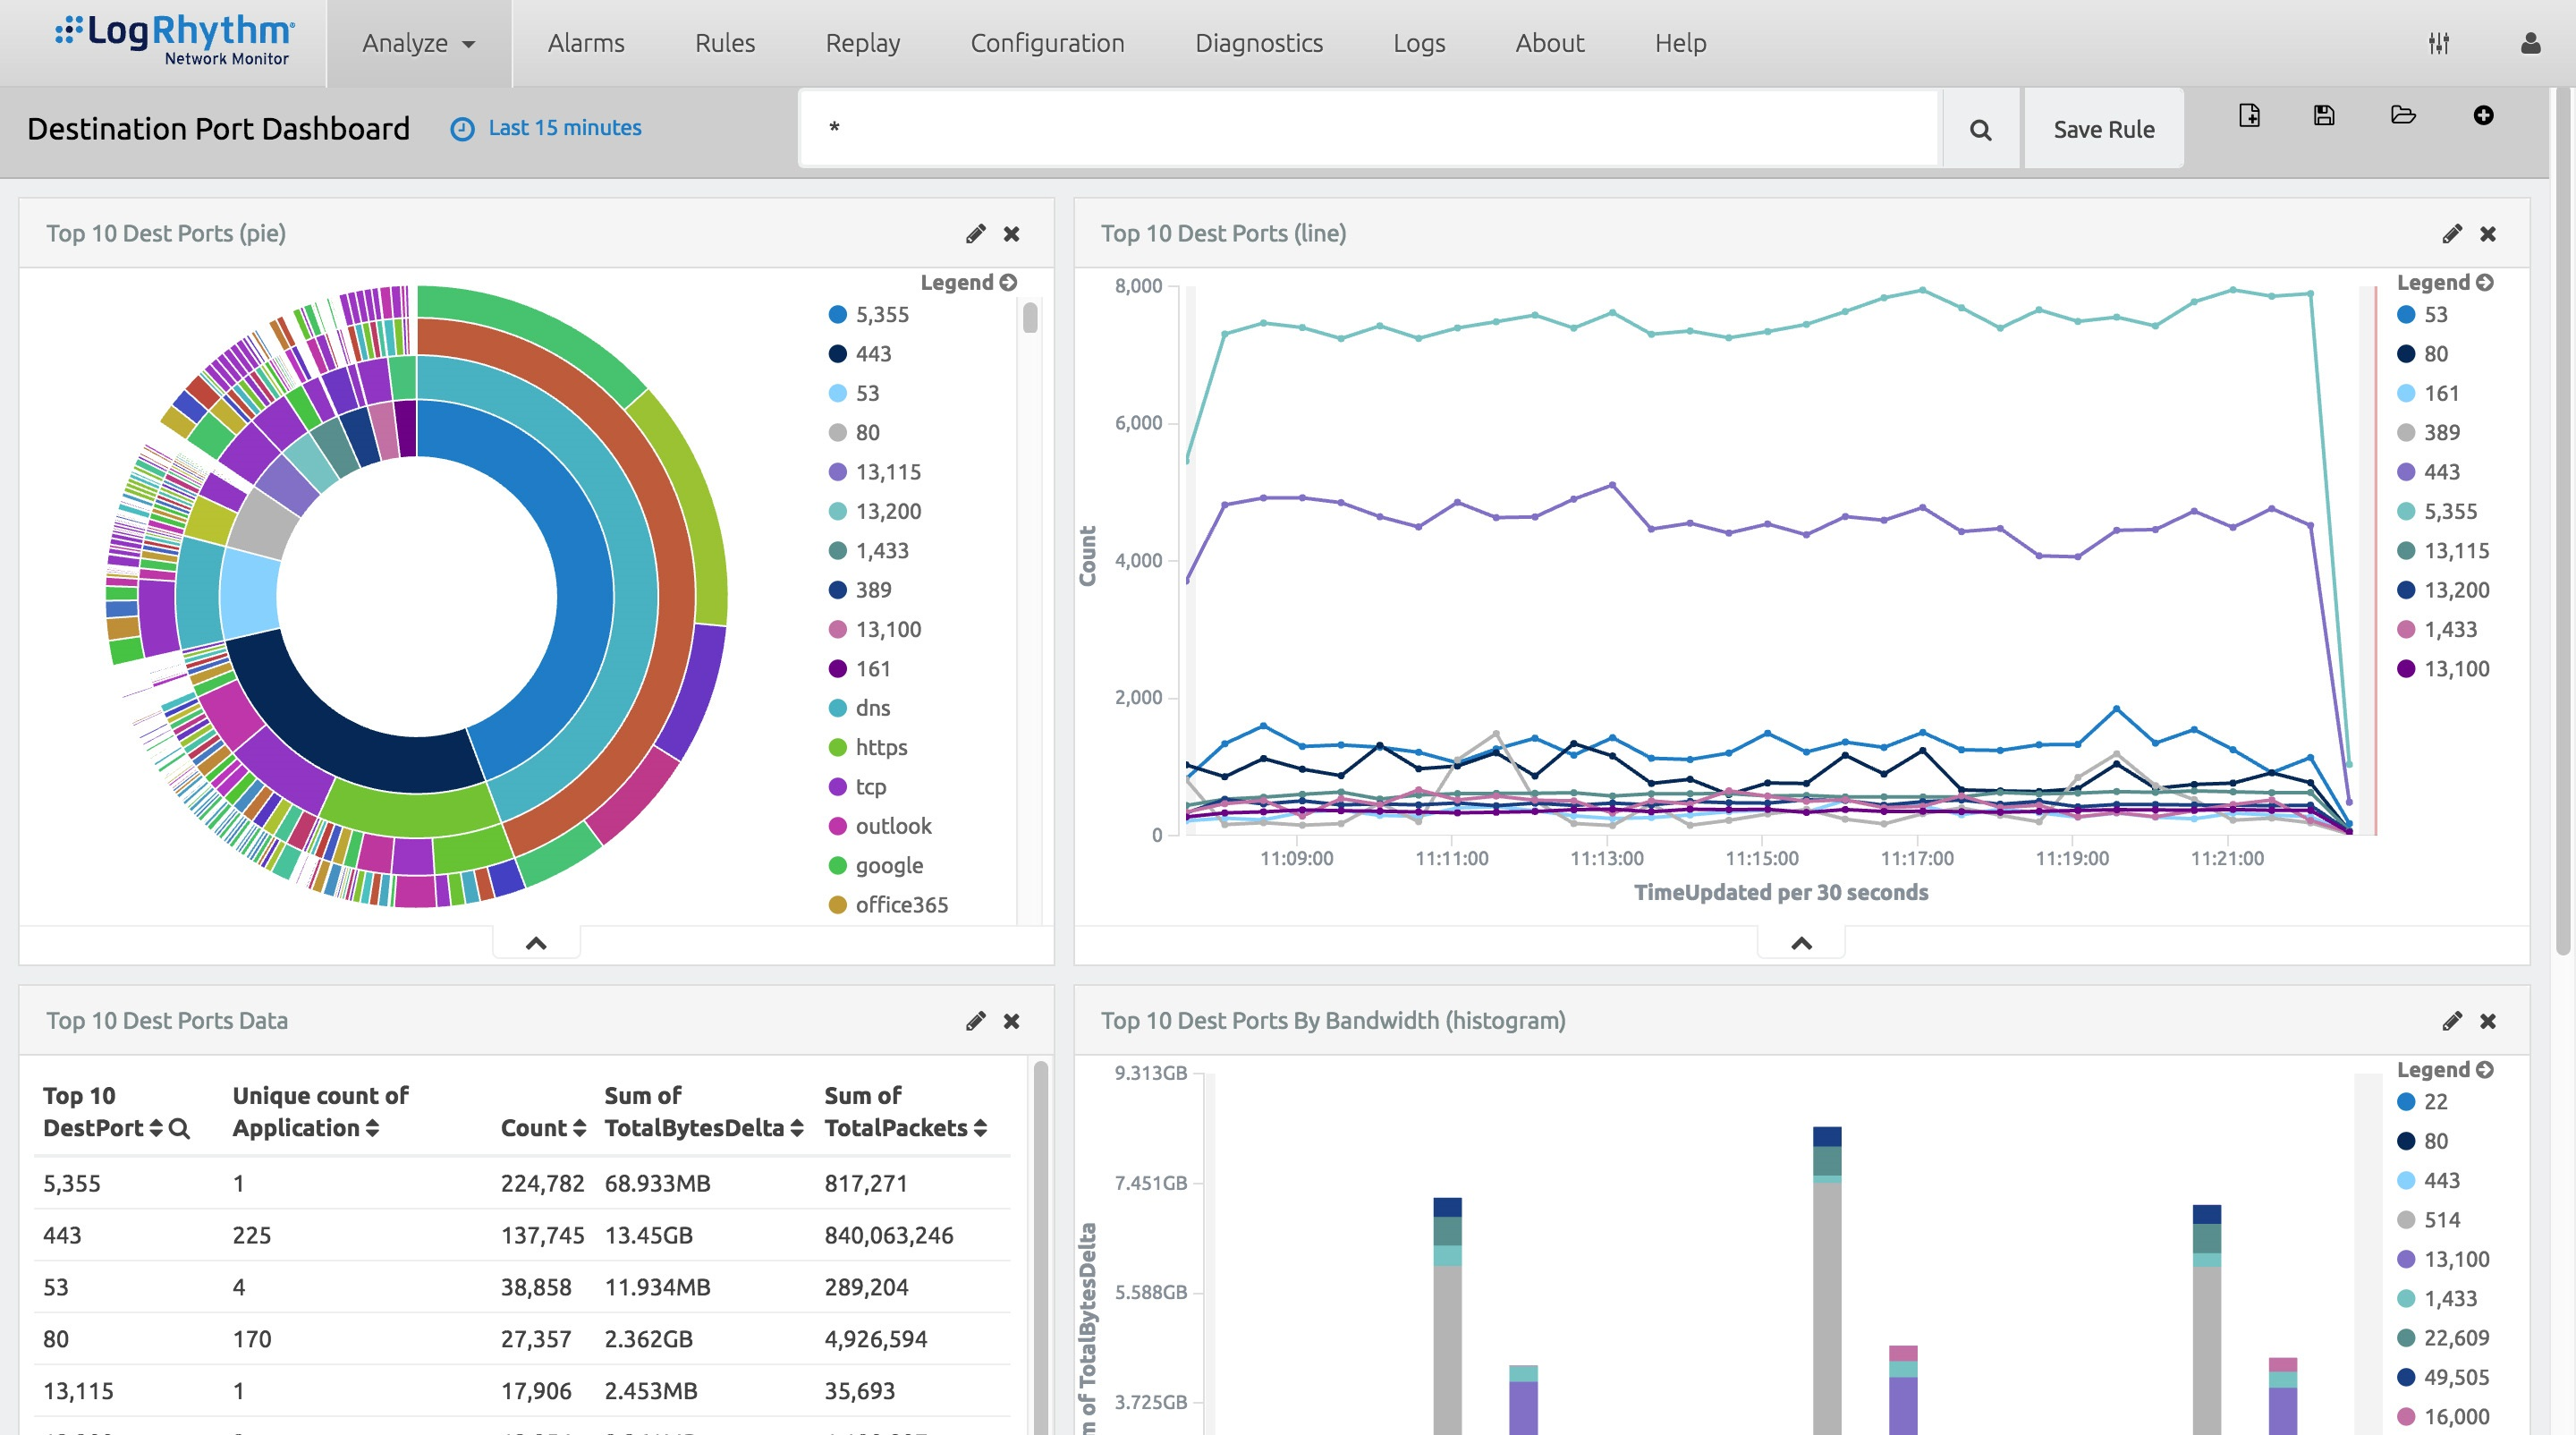 4. LogRhythm LogRhythm offers a free network analysis tool in which network managers can retain data for up to three days. NetMon Freemium connects to a test access point (TAP) or switched port analyzer (SPAN) port on a switch or router and can process and analyze packet capture (PCAP) data. LogRhythm has geared NetMon Freemium to the needs of network managers, allowing them to do deep packet analysis that can extract metadata related to a network session. It offers some very detailed metadata - for example, not just the HTTPS/SSL data, but information that ties the metadata to a specific website, such as Pandora or Buzzfeed. Network managers can also set alarms on high-risk traffic, such as Social Security numbers and credit card data. Image Source: LogRhythm